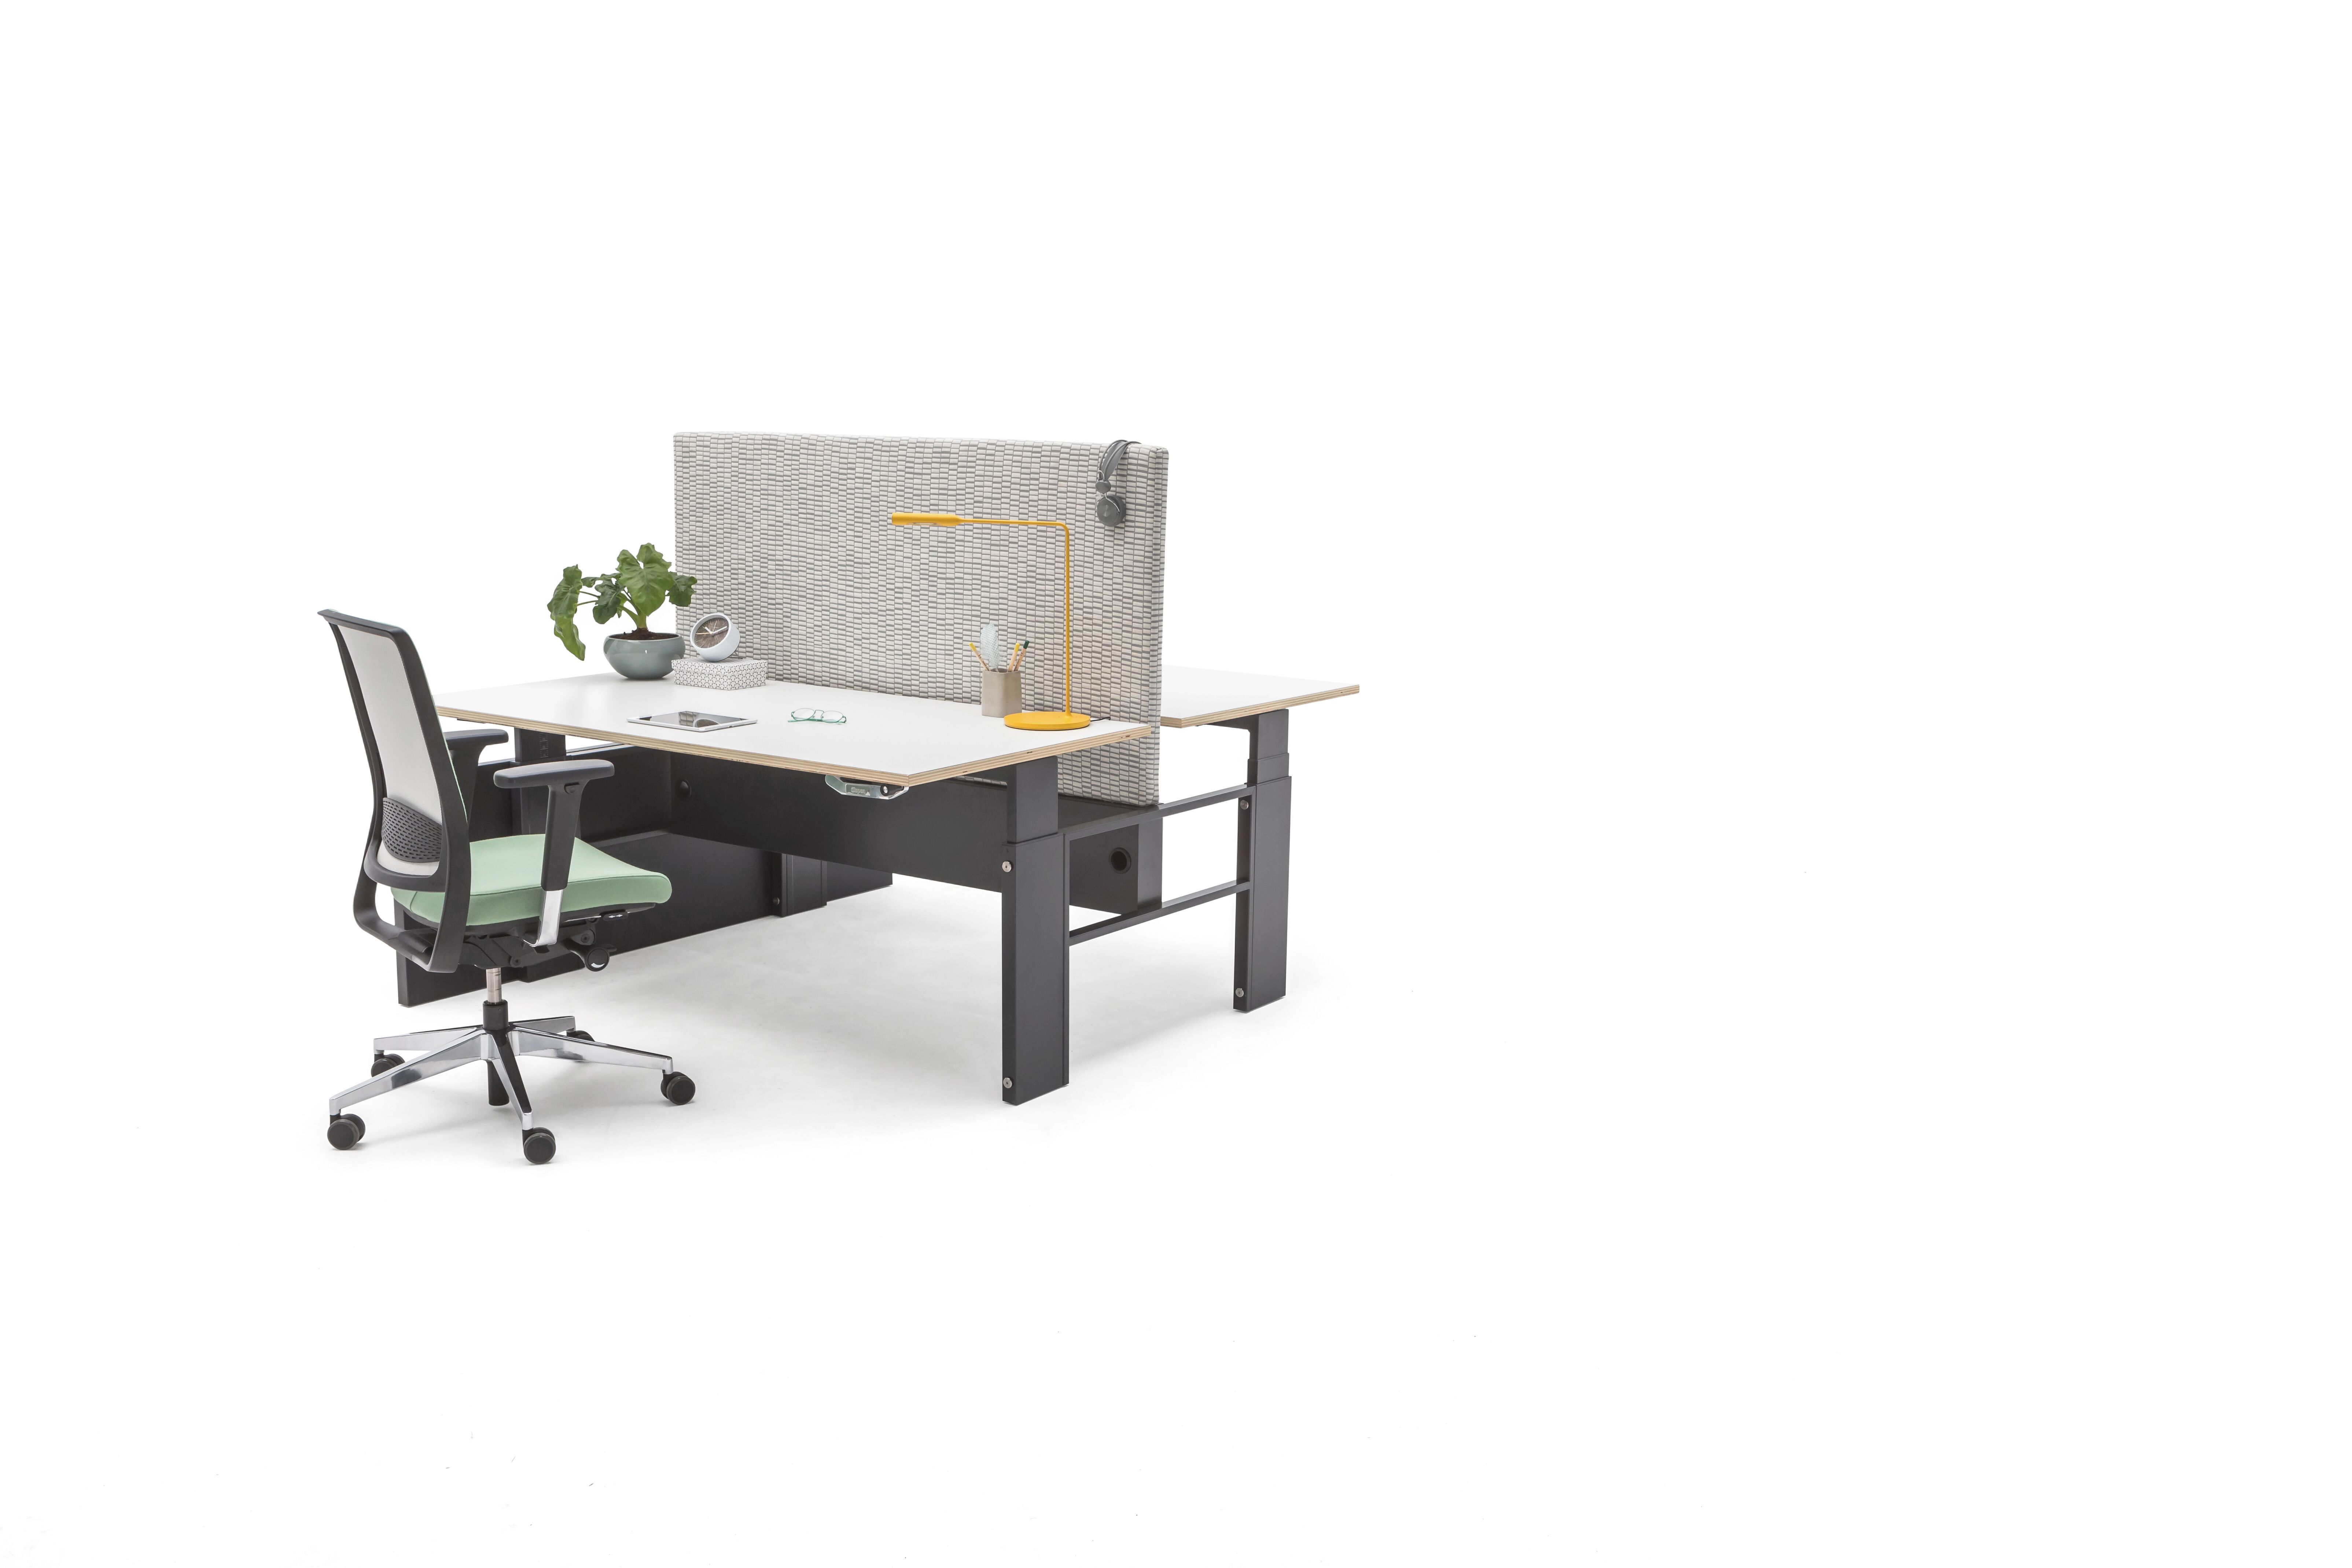 Gispen Cimo dual table with anthracite frame and black wooden dual panel leg left with white plywood tabletops with grey upholstered screen straight rounded thin and green Zinn office chair front right view